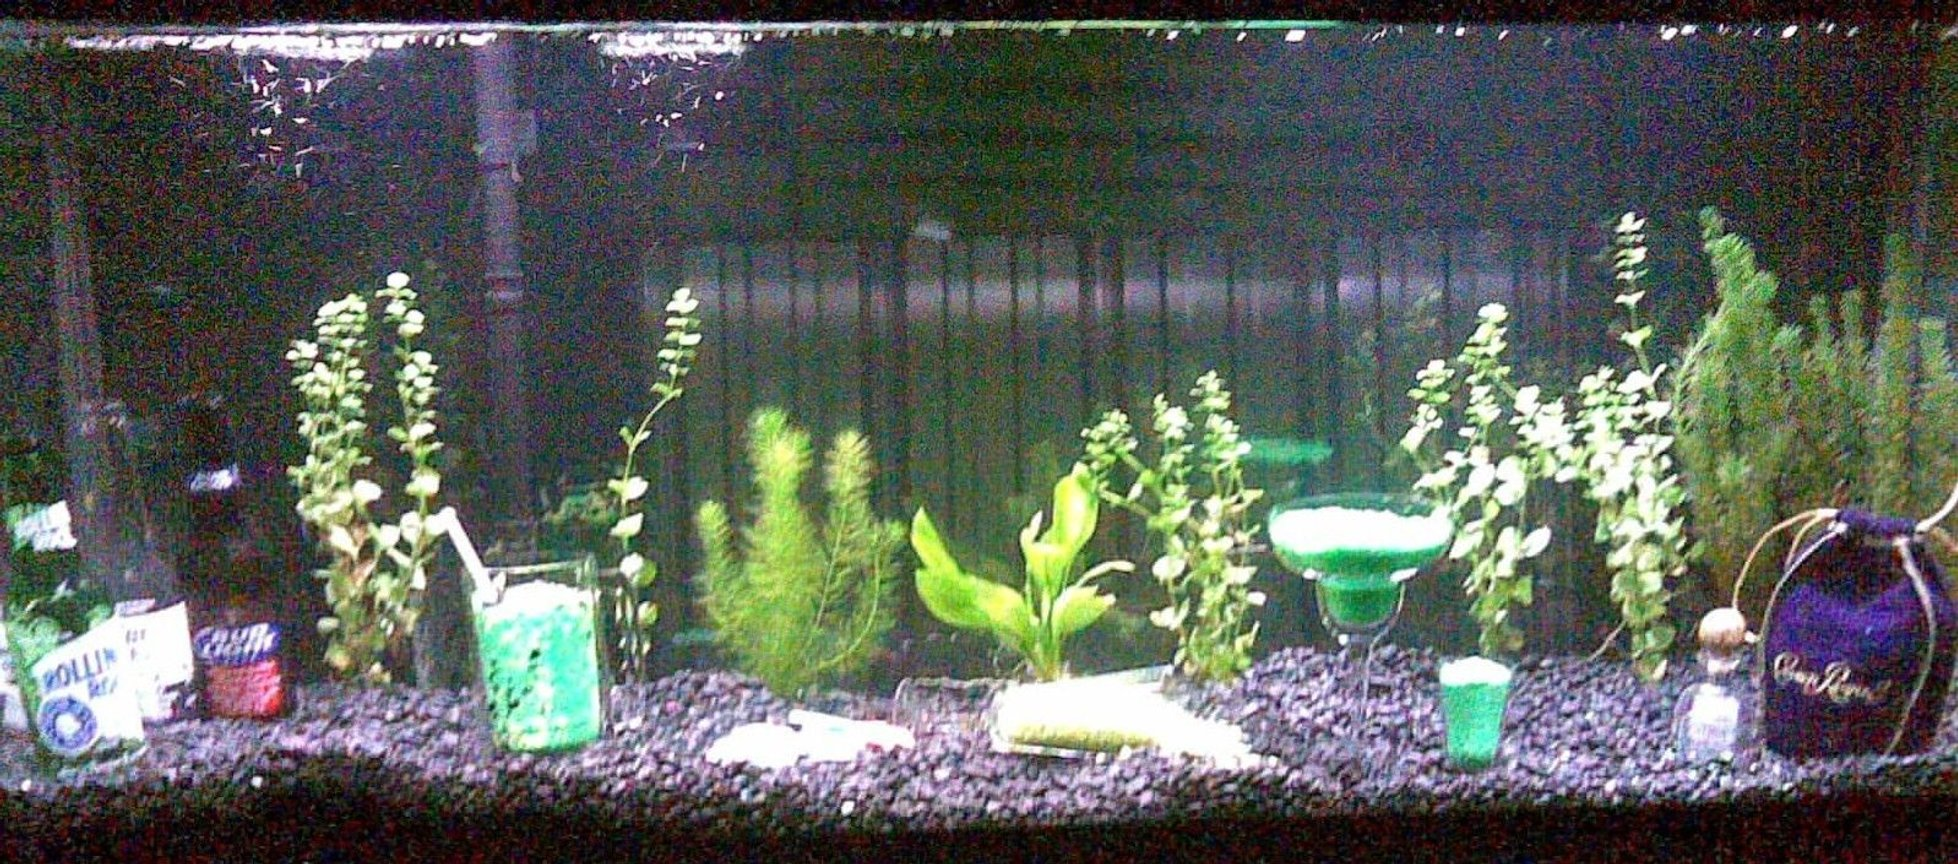 55 gallons planted tank (mostly live plants and fish) - (Picture was taken with a cell phone so please excuse the fuzzy quality) This fish tank is my 55 gallon bar. This fish tank is part 2 of a 2 part wet bar in the downstairs of my house. Atop this fish tank is counter top and behind is a full bar. The insides of this fish tank include fish, plants, beer wine and liquor bottles. There are mixed drinks (gravel) and even a spilled cocktail. NOT PICTURED HERE: there is a tap built into the top of the bar and a glass that has been perm. glued down with a constant flow of pond water pumped through the tap and into the glass that then falls back through the small hole back into the tank. One of the most eye catching tanks I've ever owned because of the setup and environment around the tank as well as inside the tank.